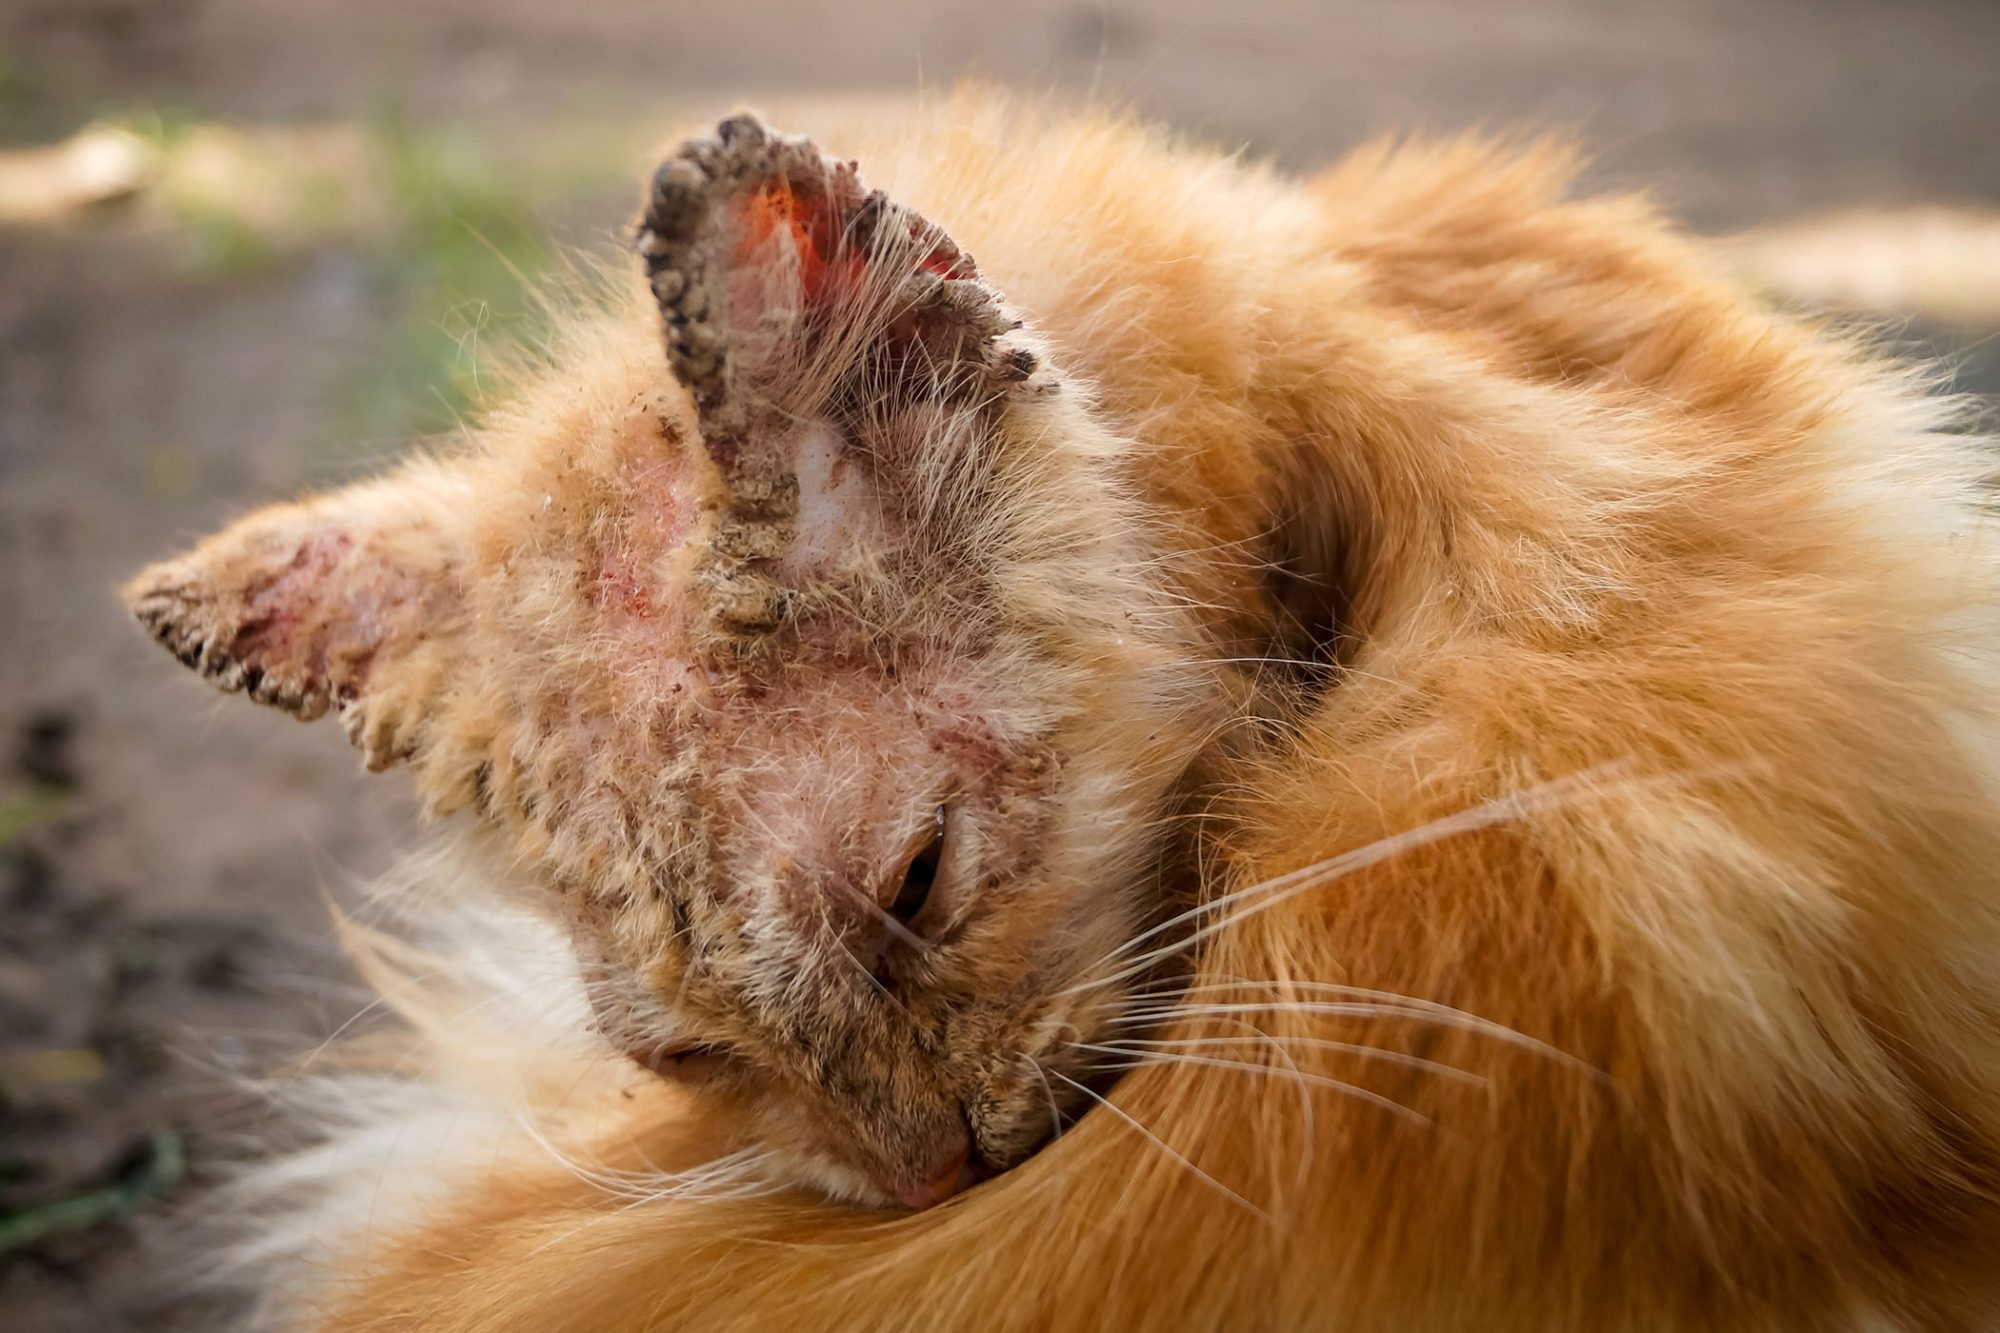 cat with signs of sarcoptic mange infection on ears